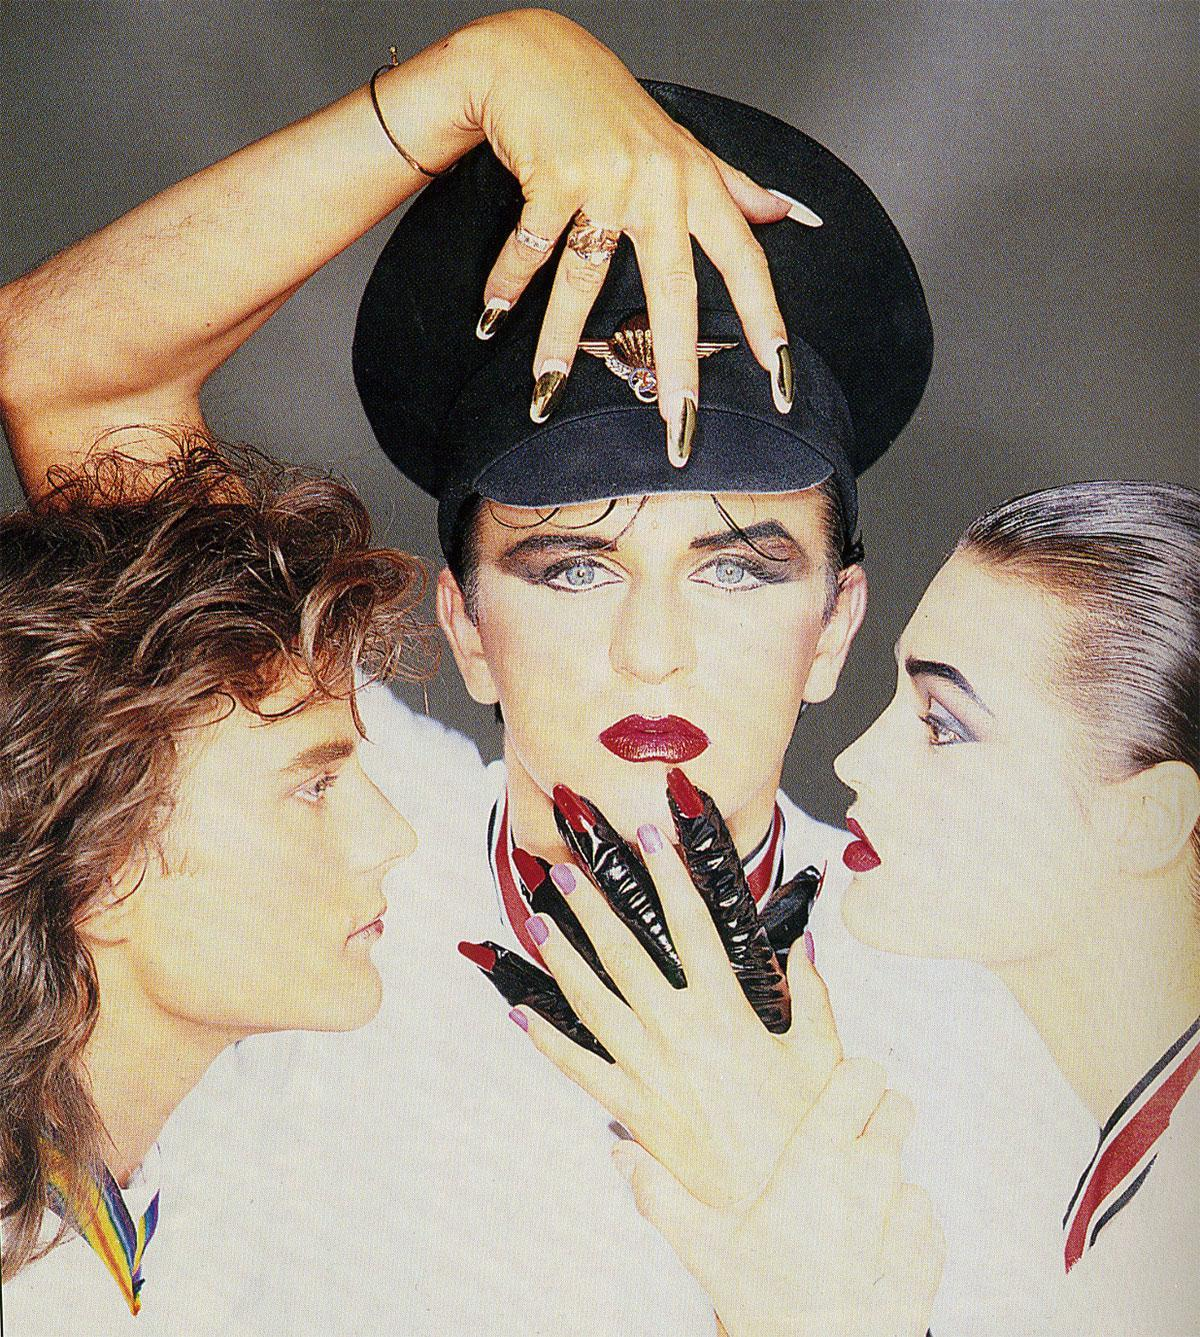 Pictures Steve Strange The New Romantic Pioneer From The Valleys